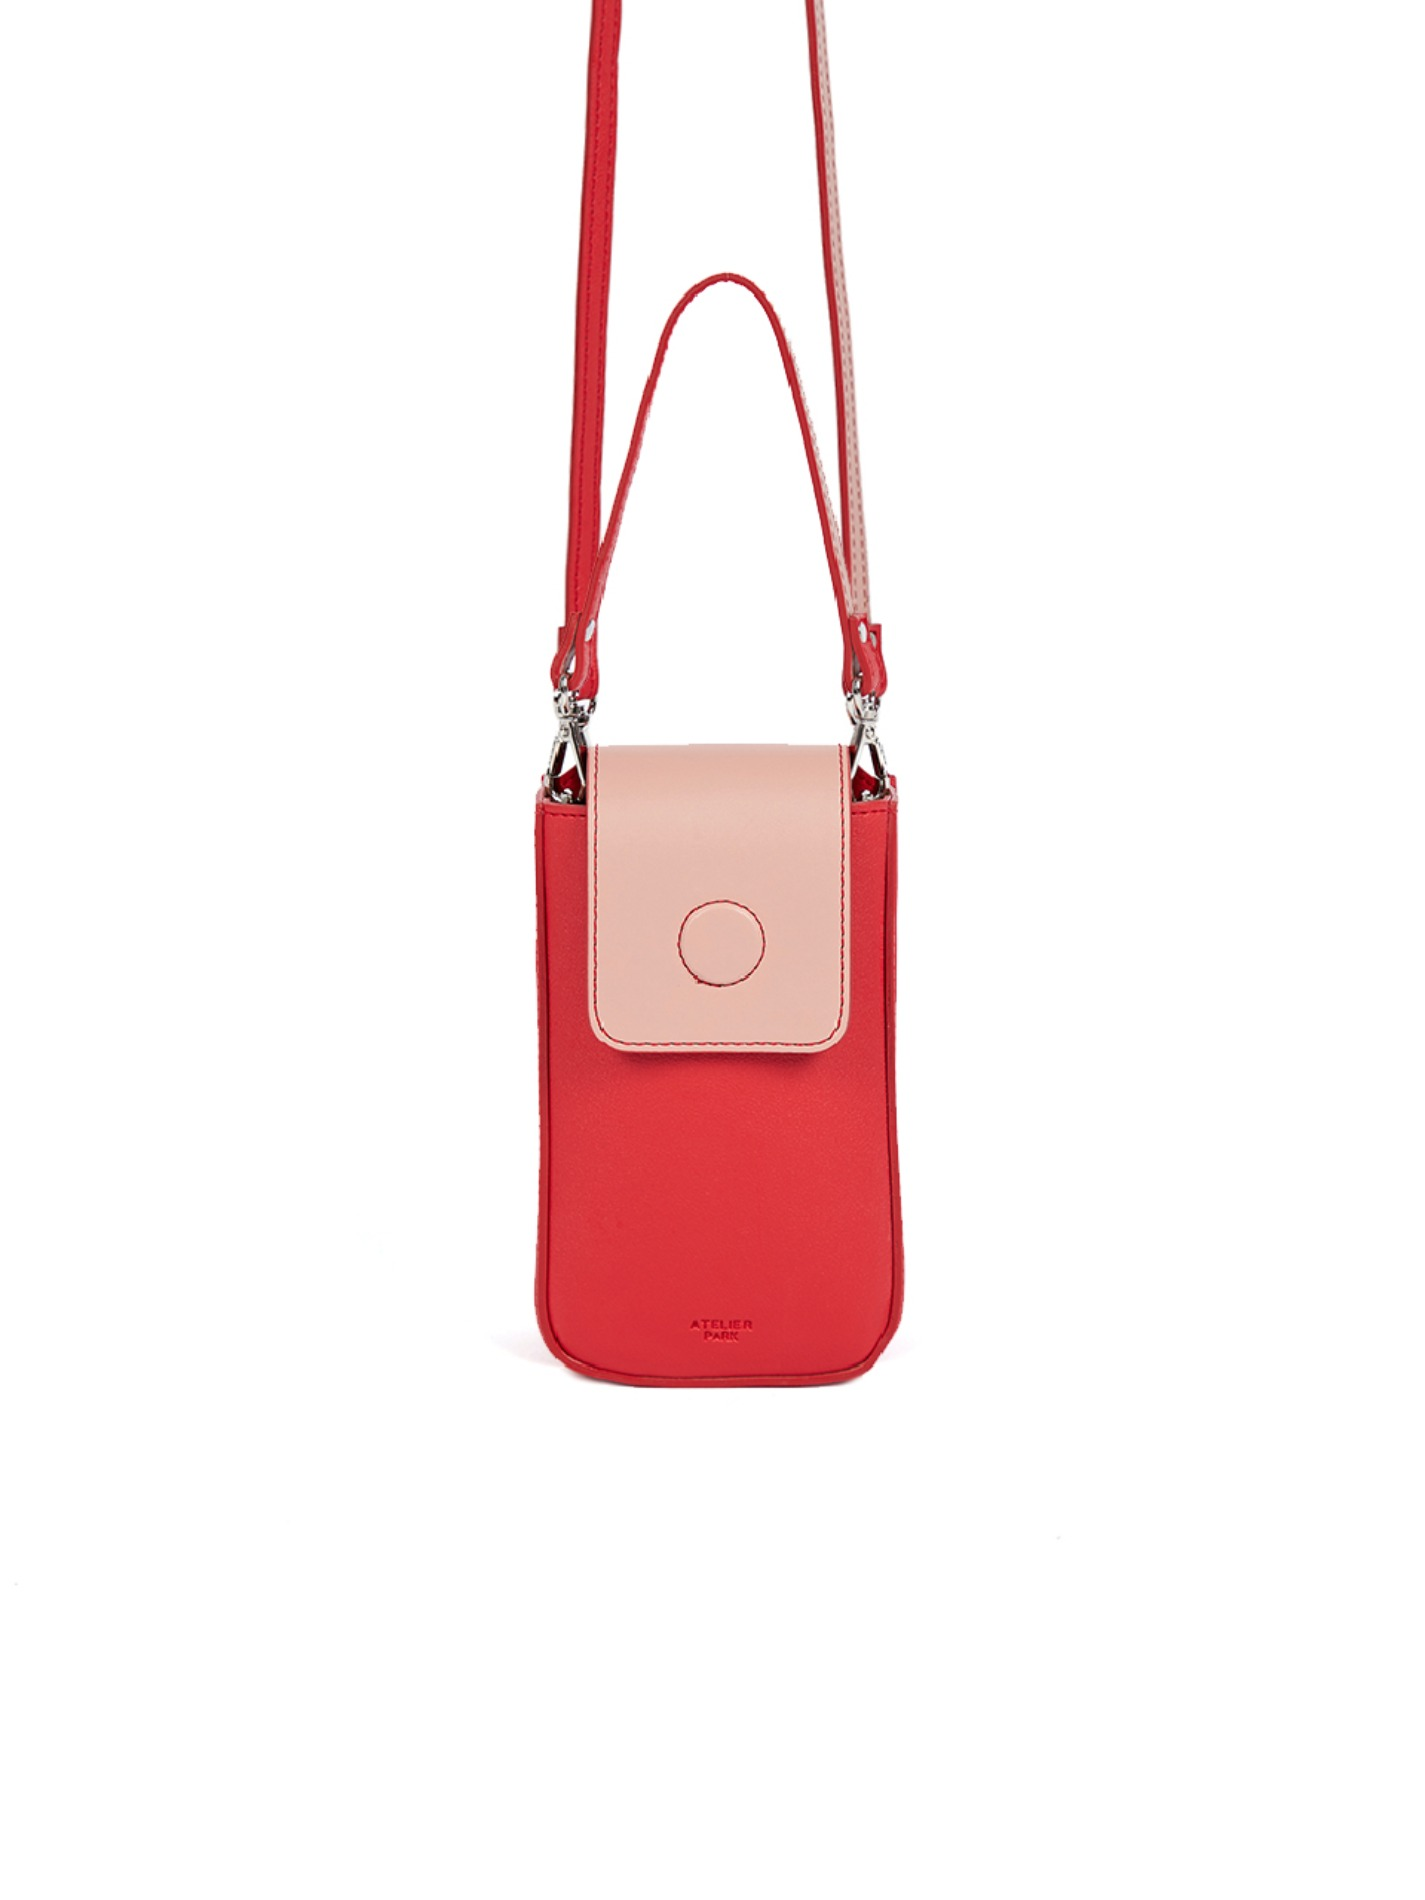 [재입고미정] BLOCK NANO BAG_ RED